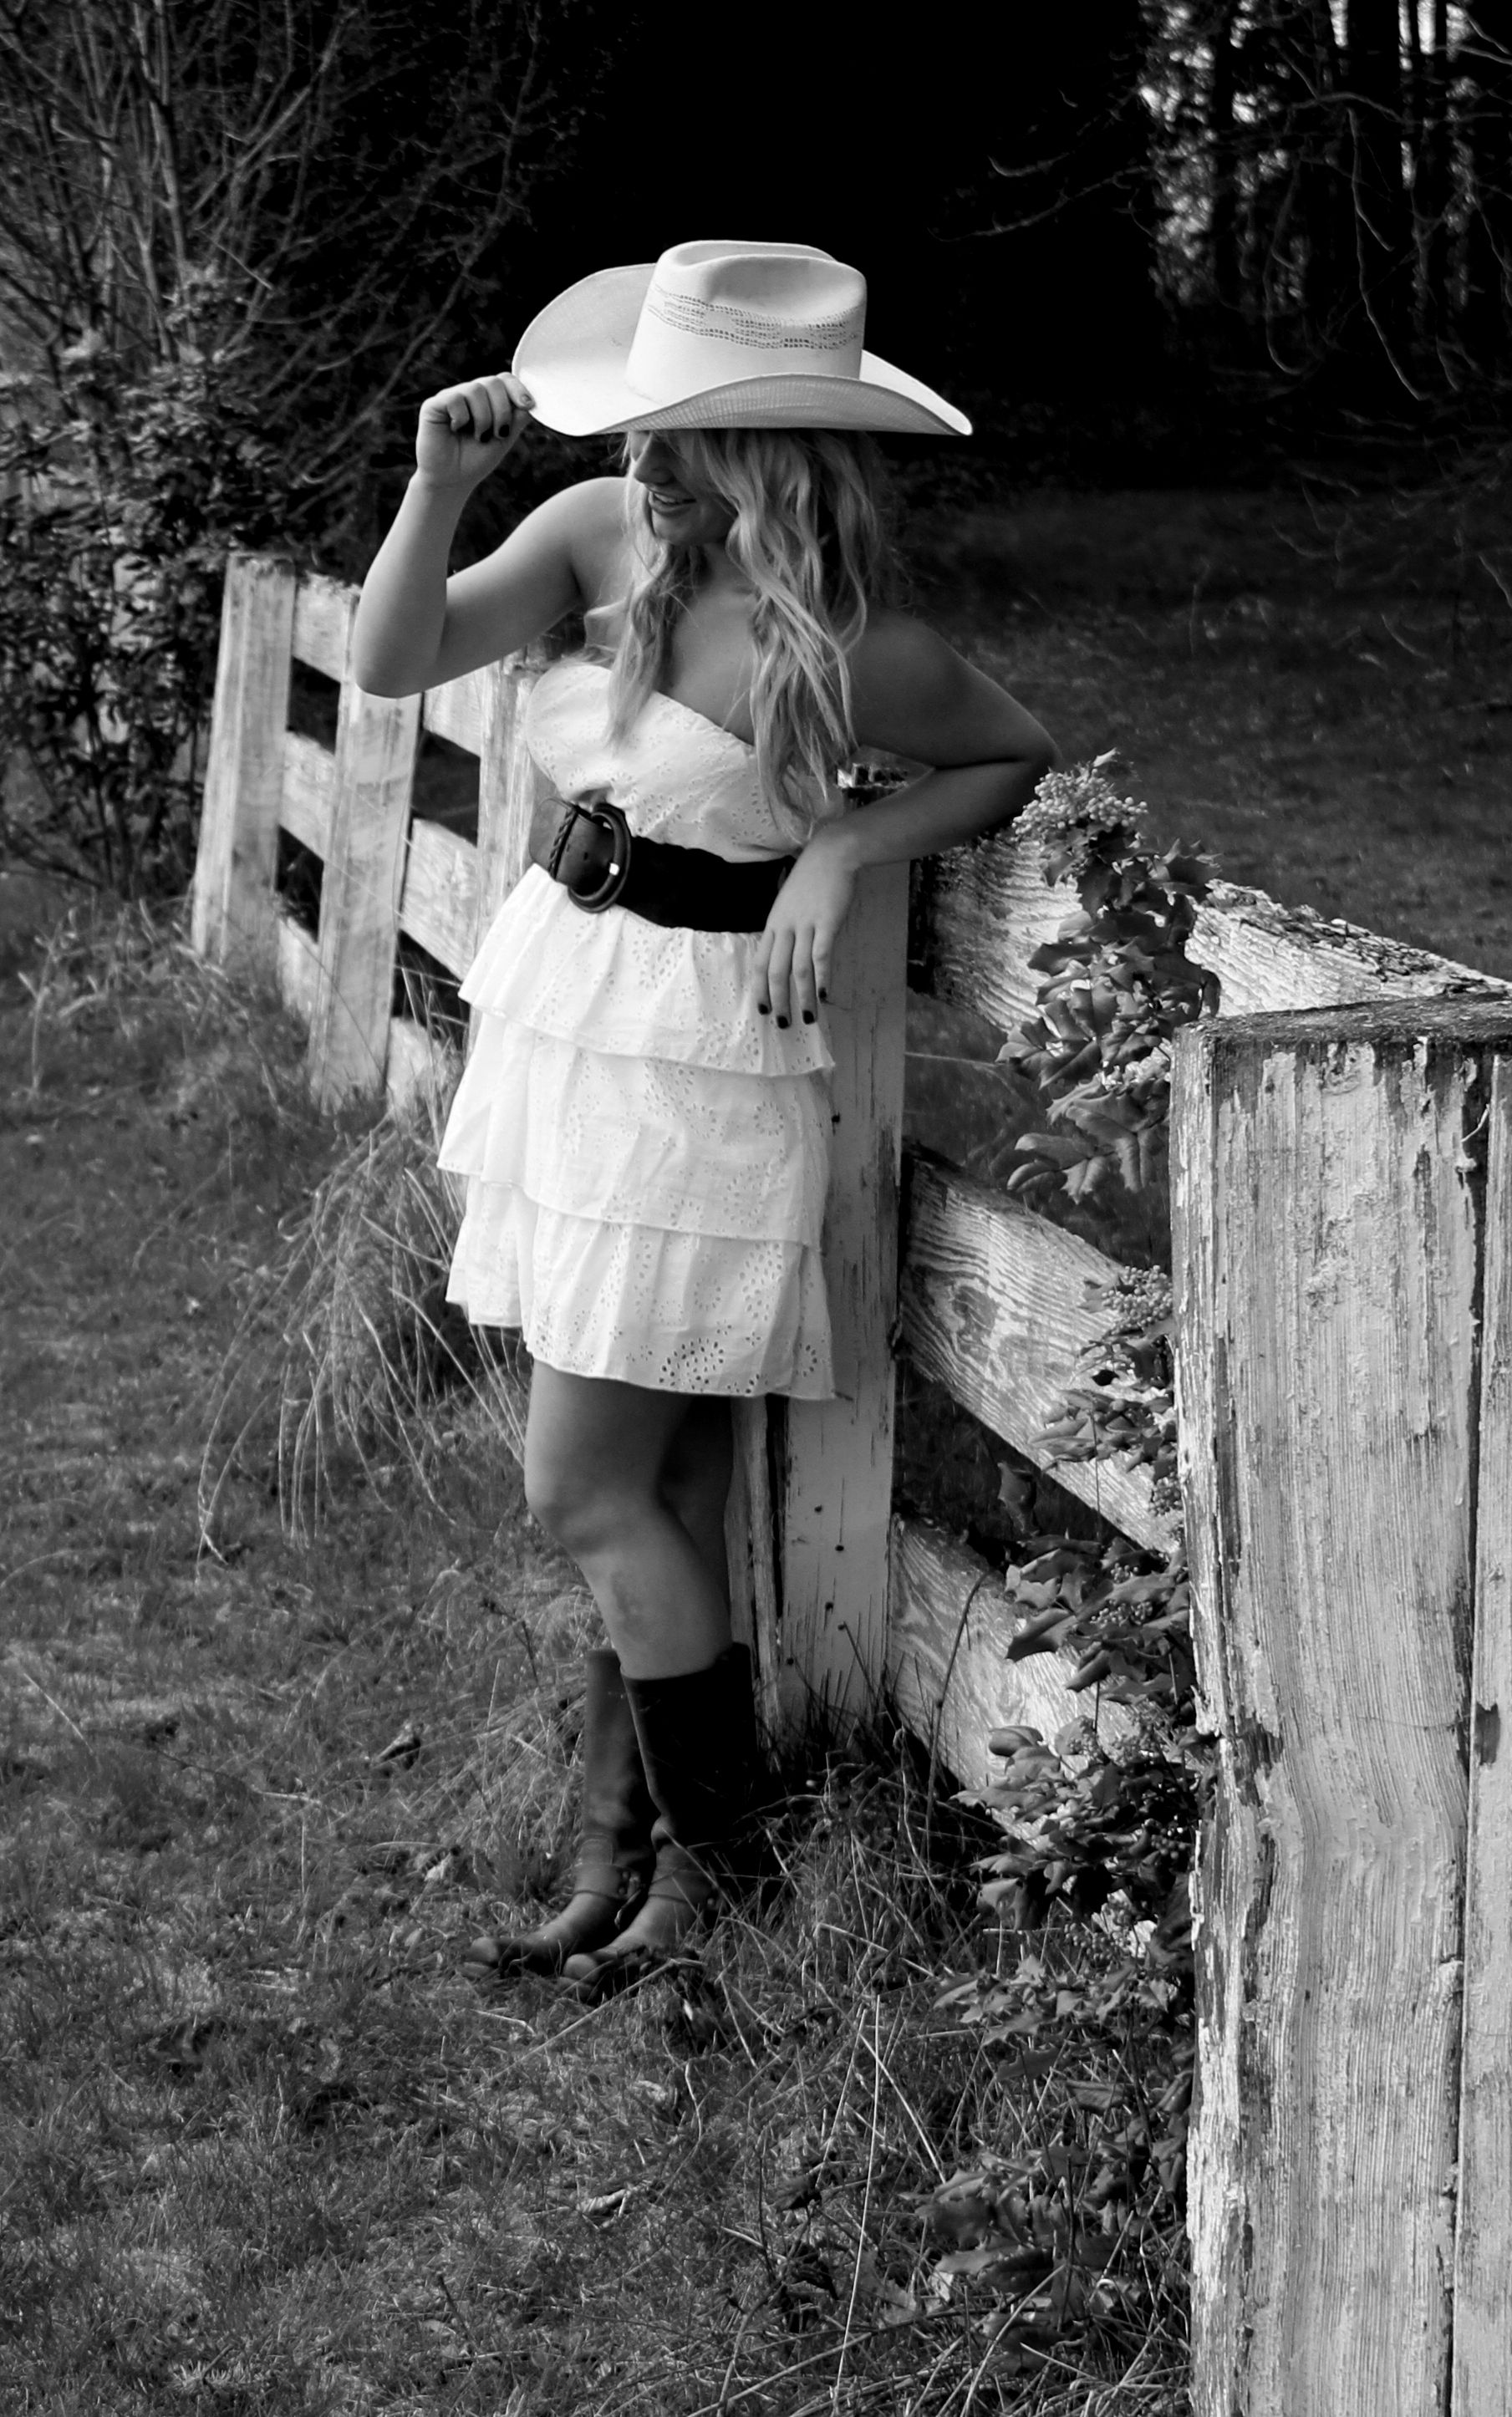 Cowboy hat. Want to do this type of pic for senior pic ...